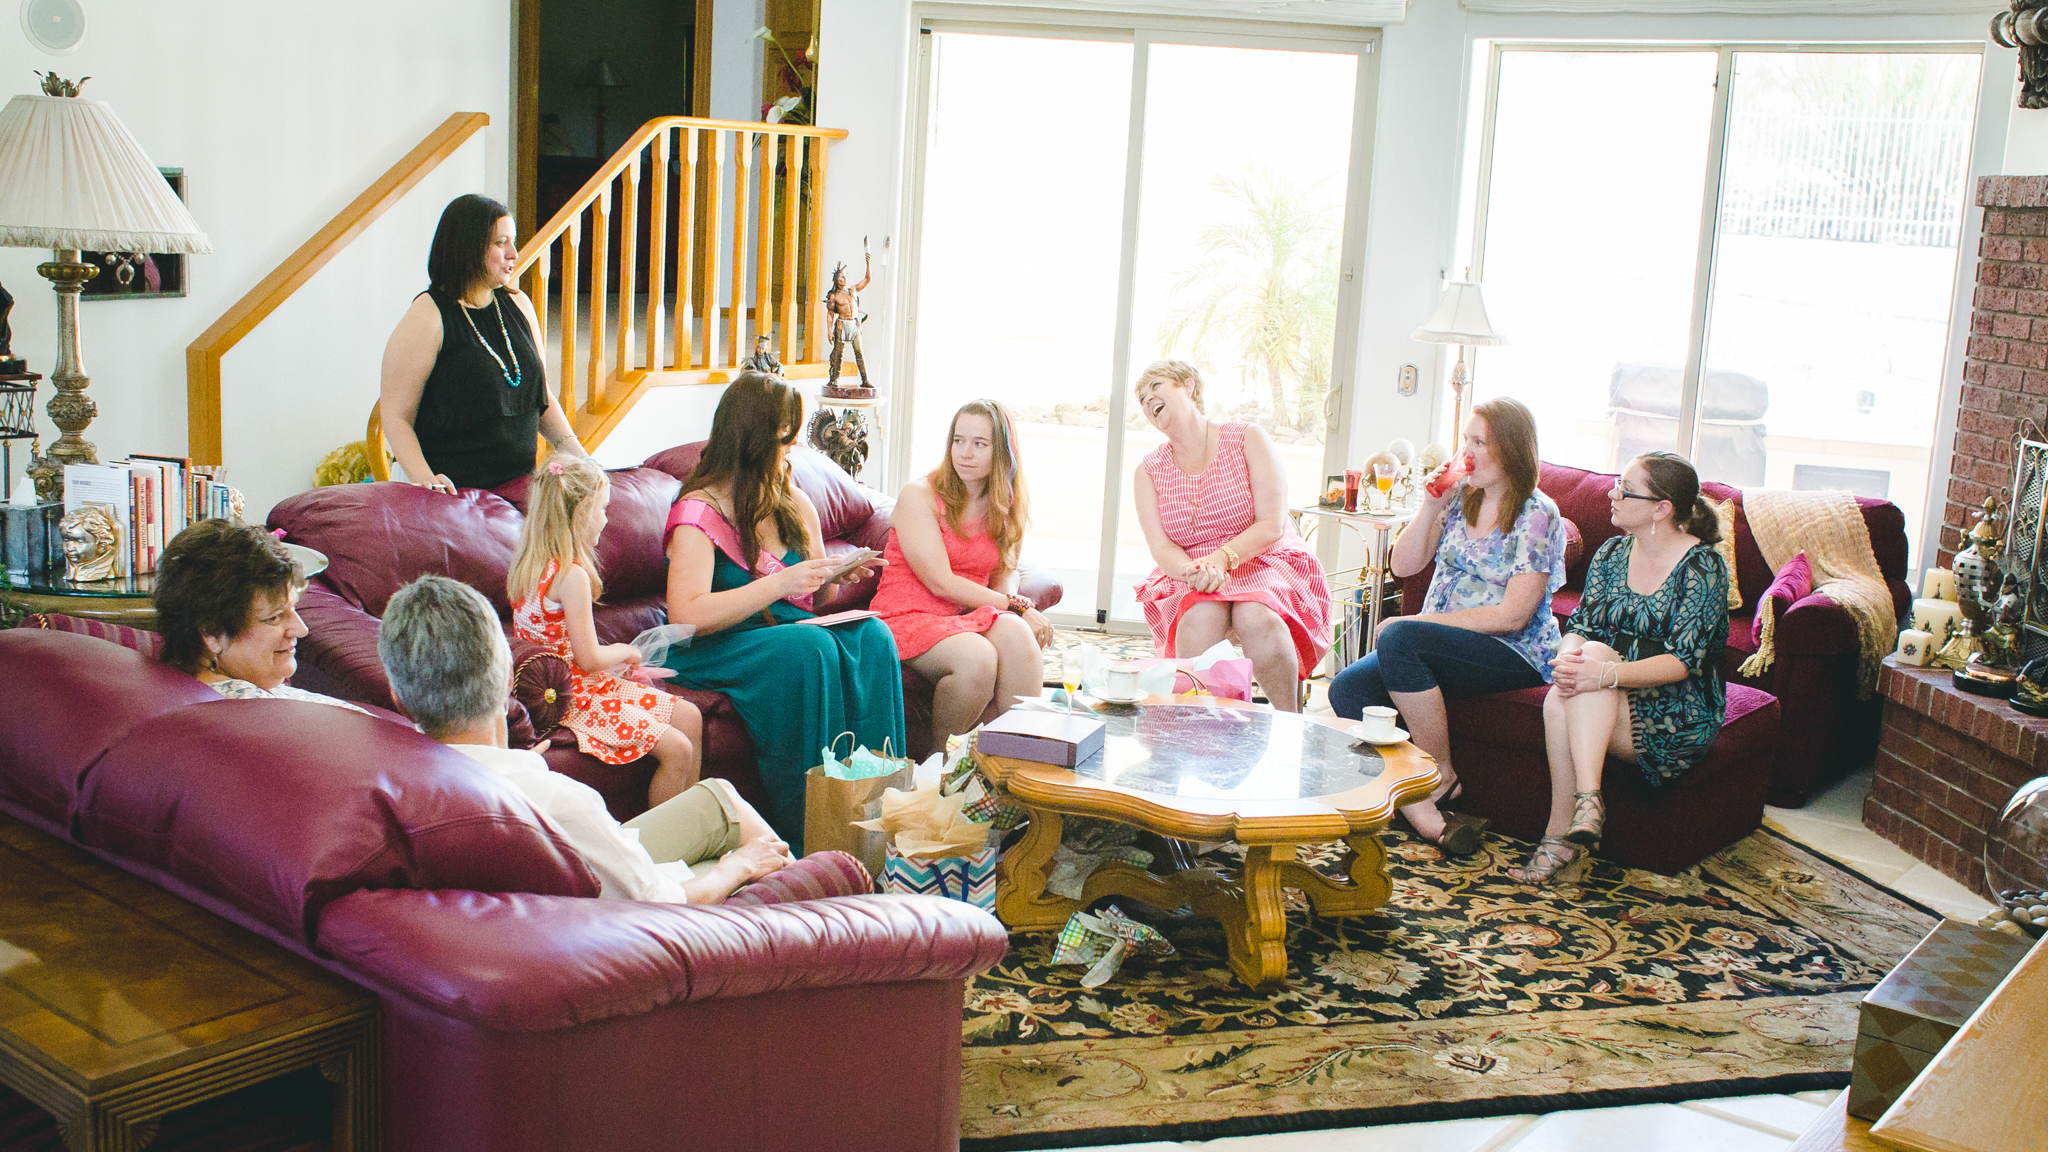 phoenix-photographer-wide-angle-tiffany-bridal-shower